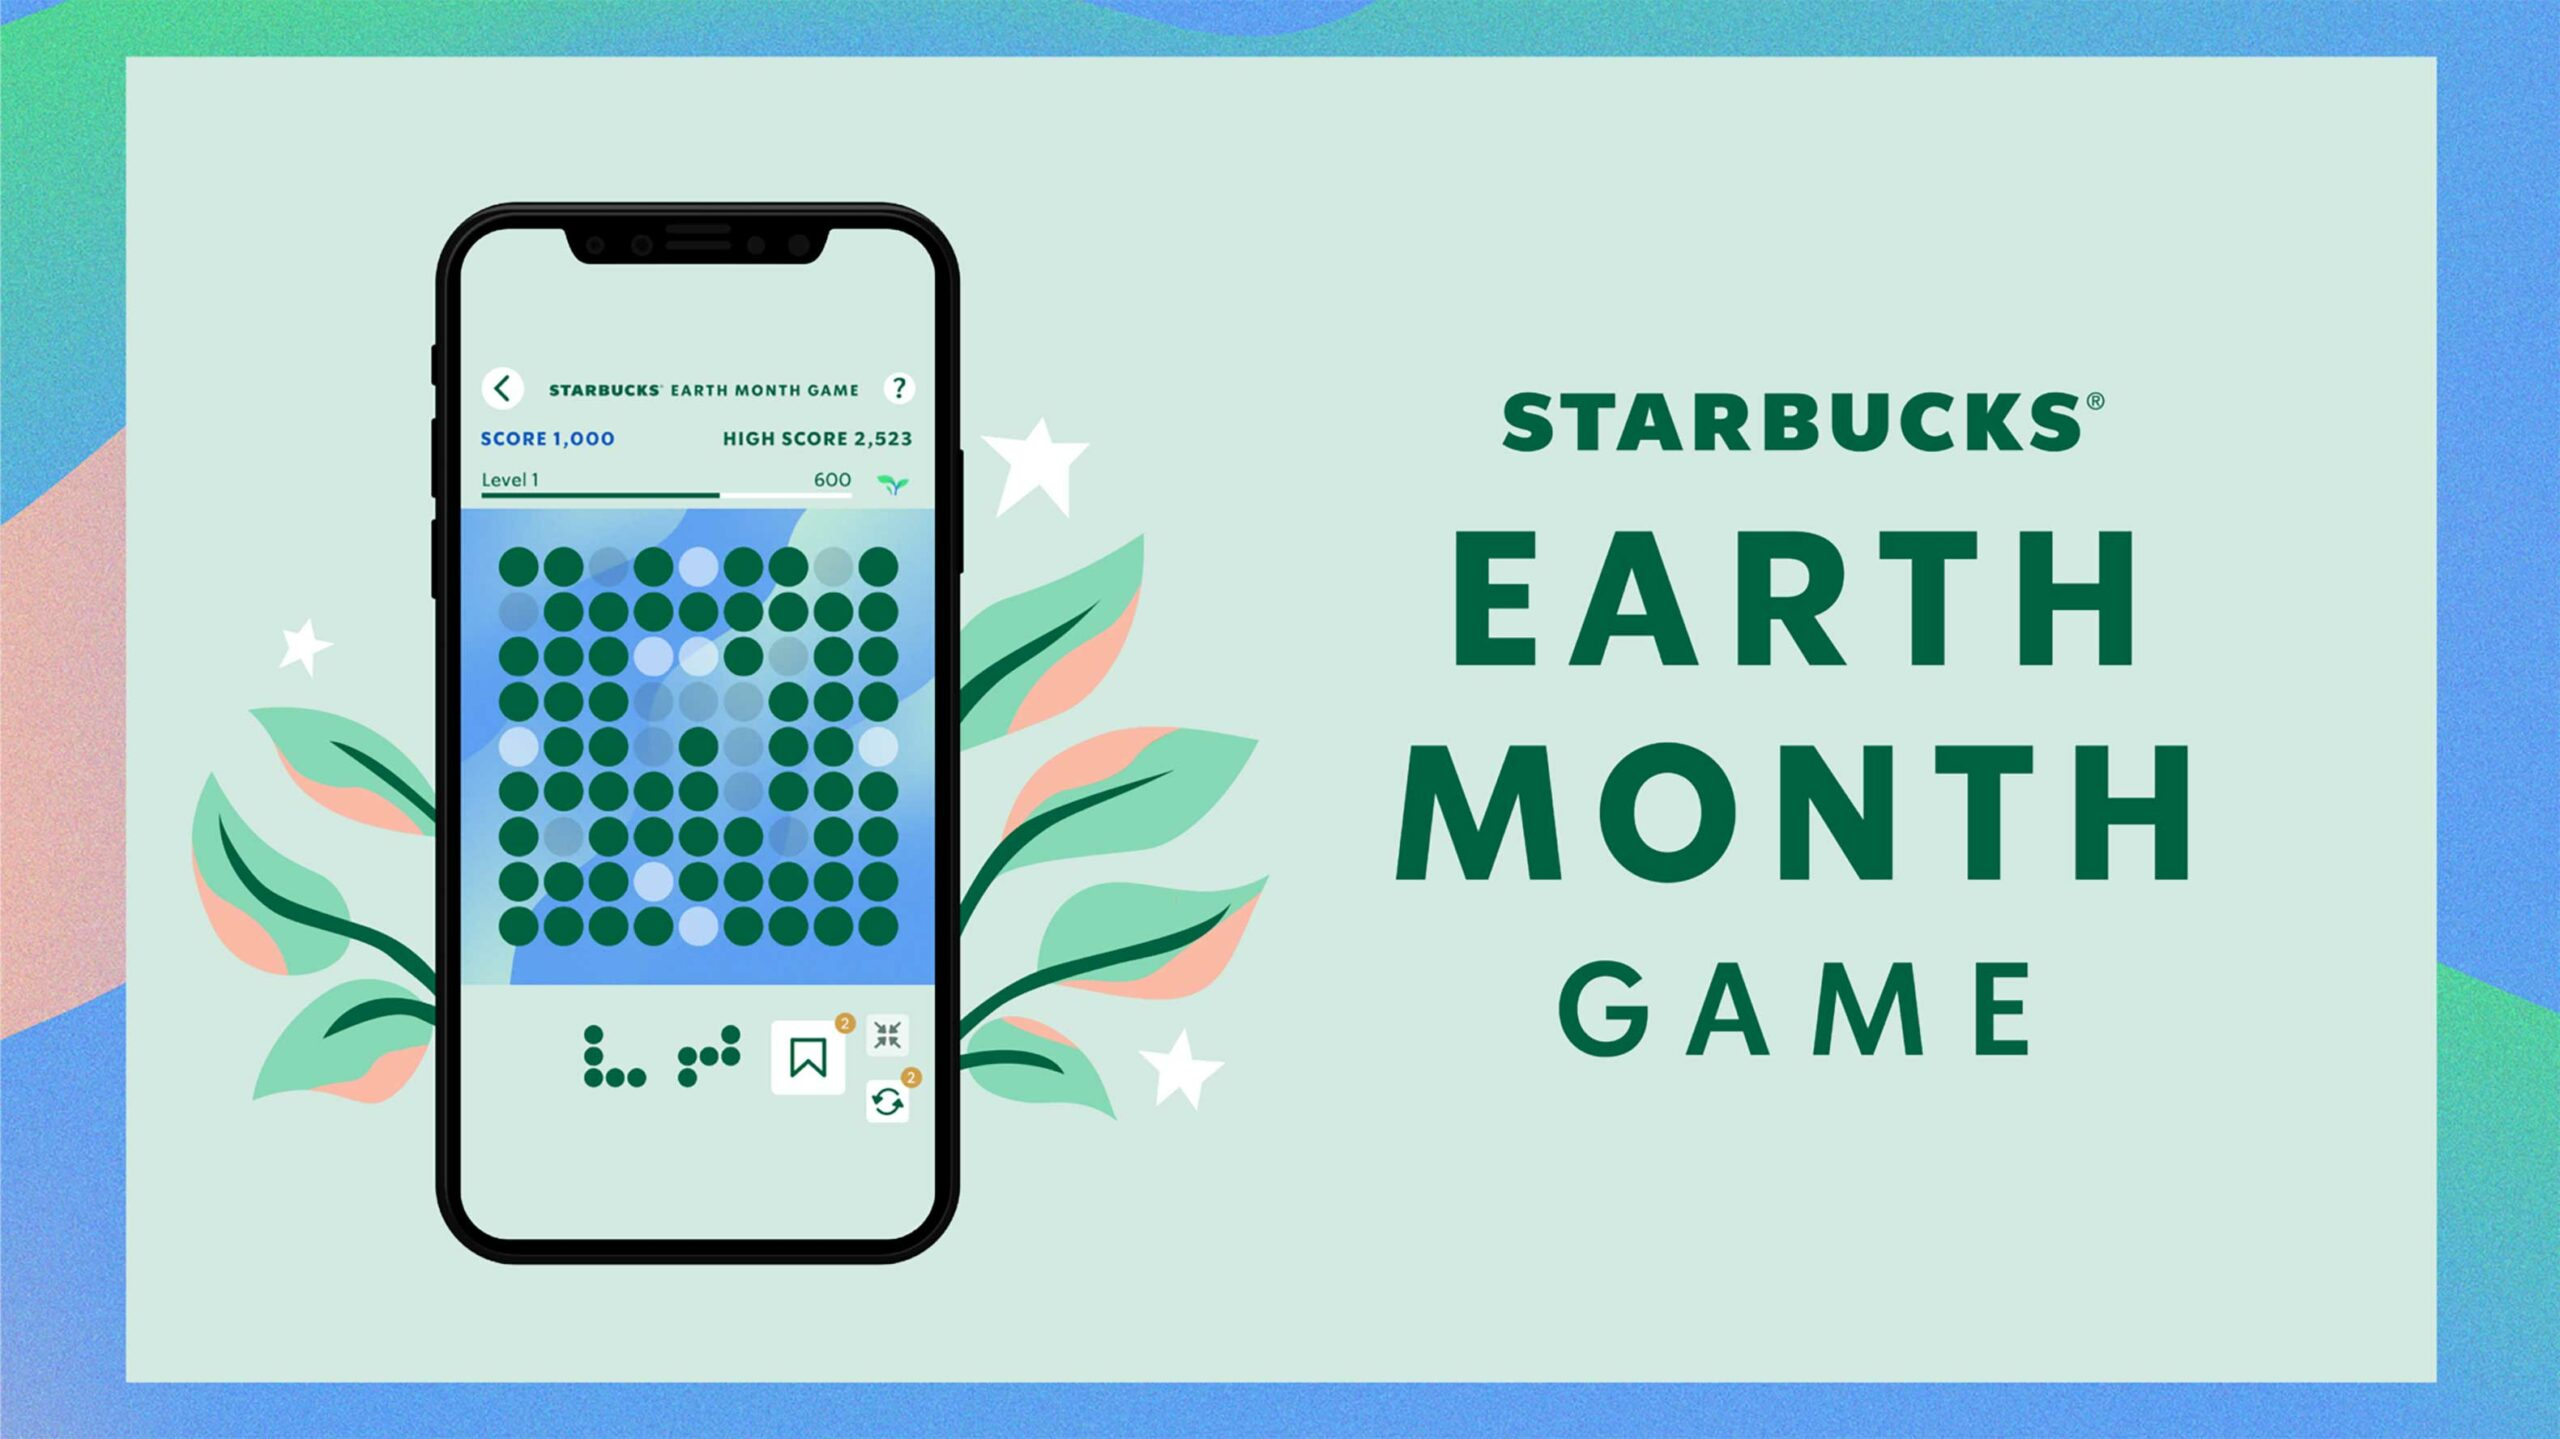 Starbucks mobile game